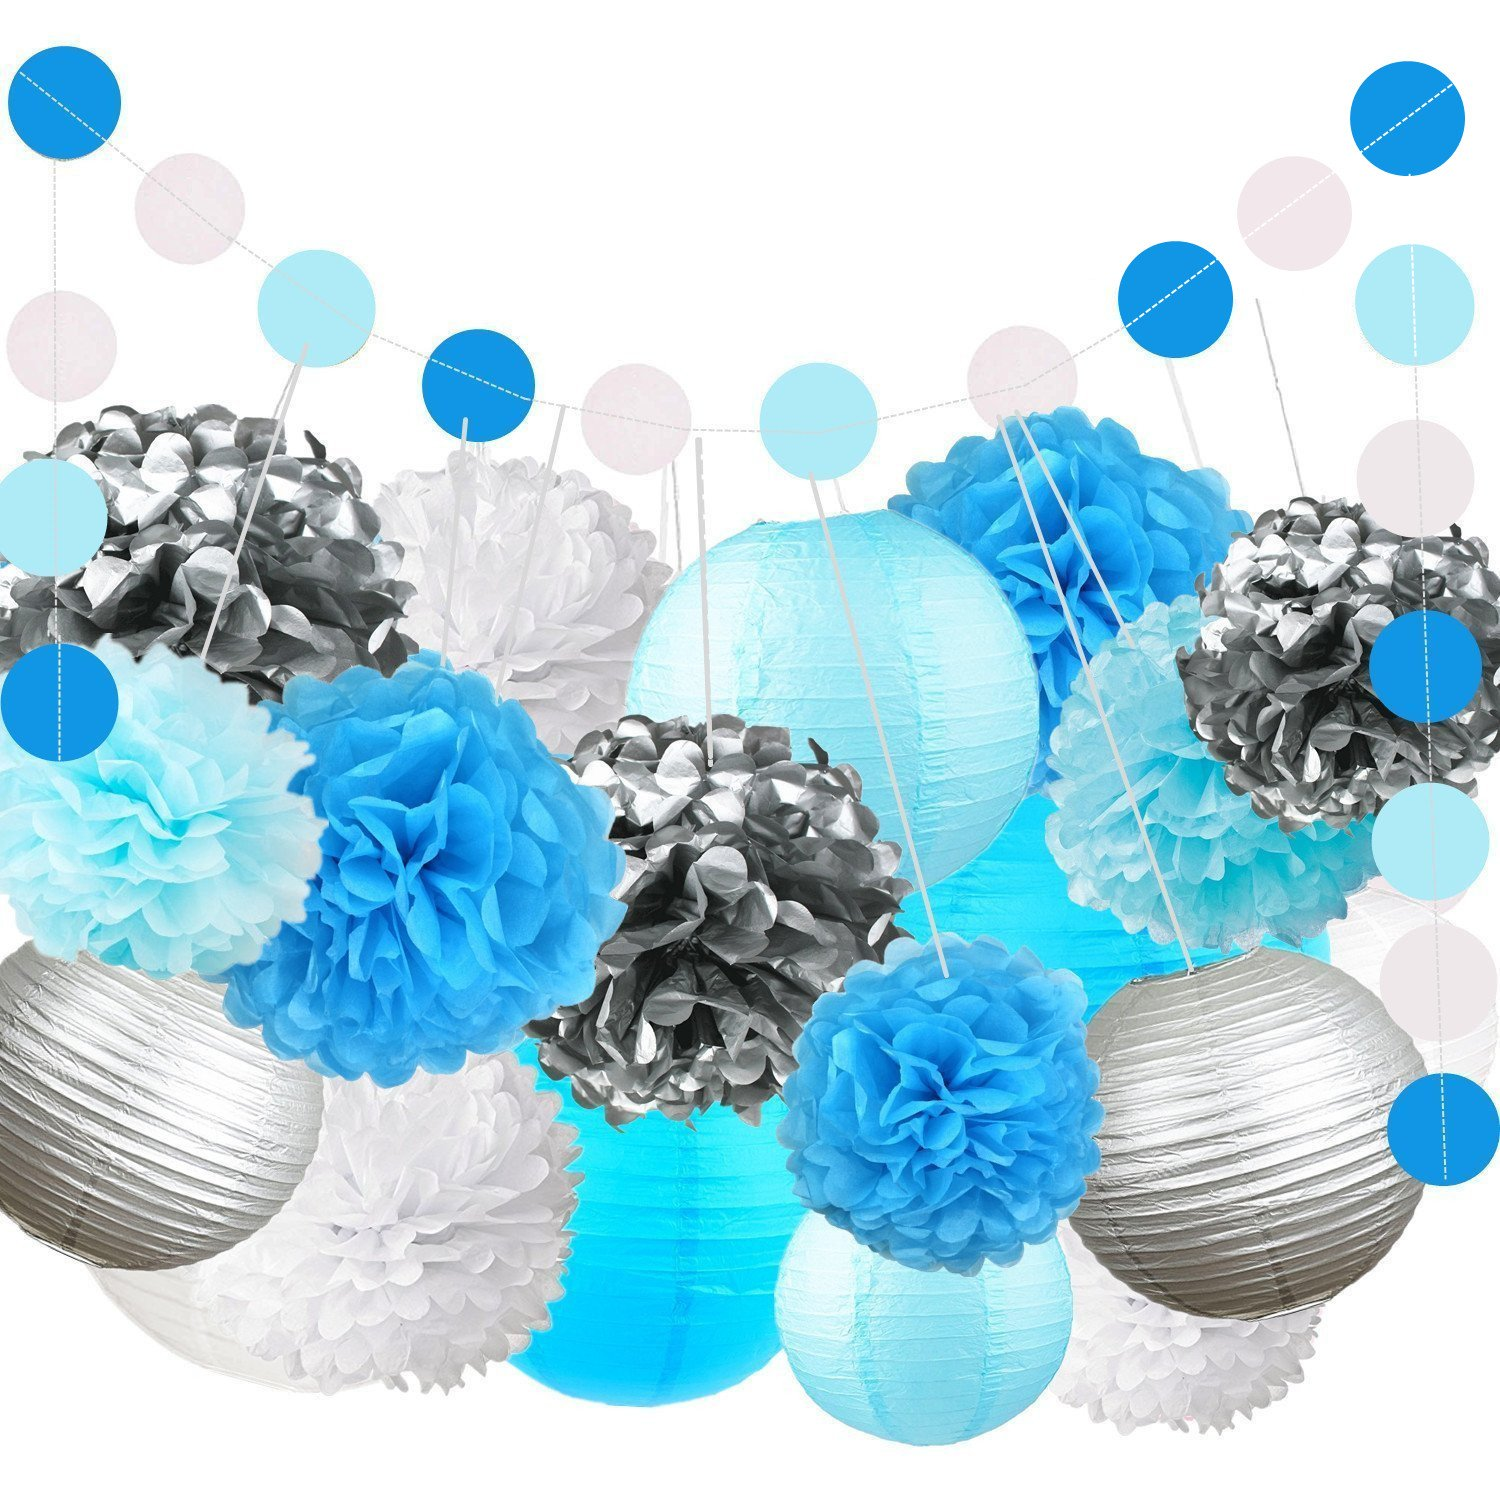 Fonder Mols White Blue Turquoise Silver Tissue Paper Flowers Pom Pom Party Lanterns Circle Dots Garlands (Pack of 22) for Navy Nautical Anchor Sea Ocean Bubble Themed Party Decorations by fondermols